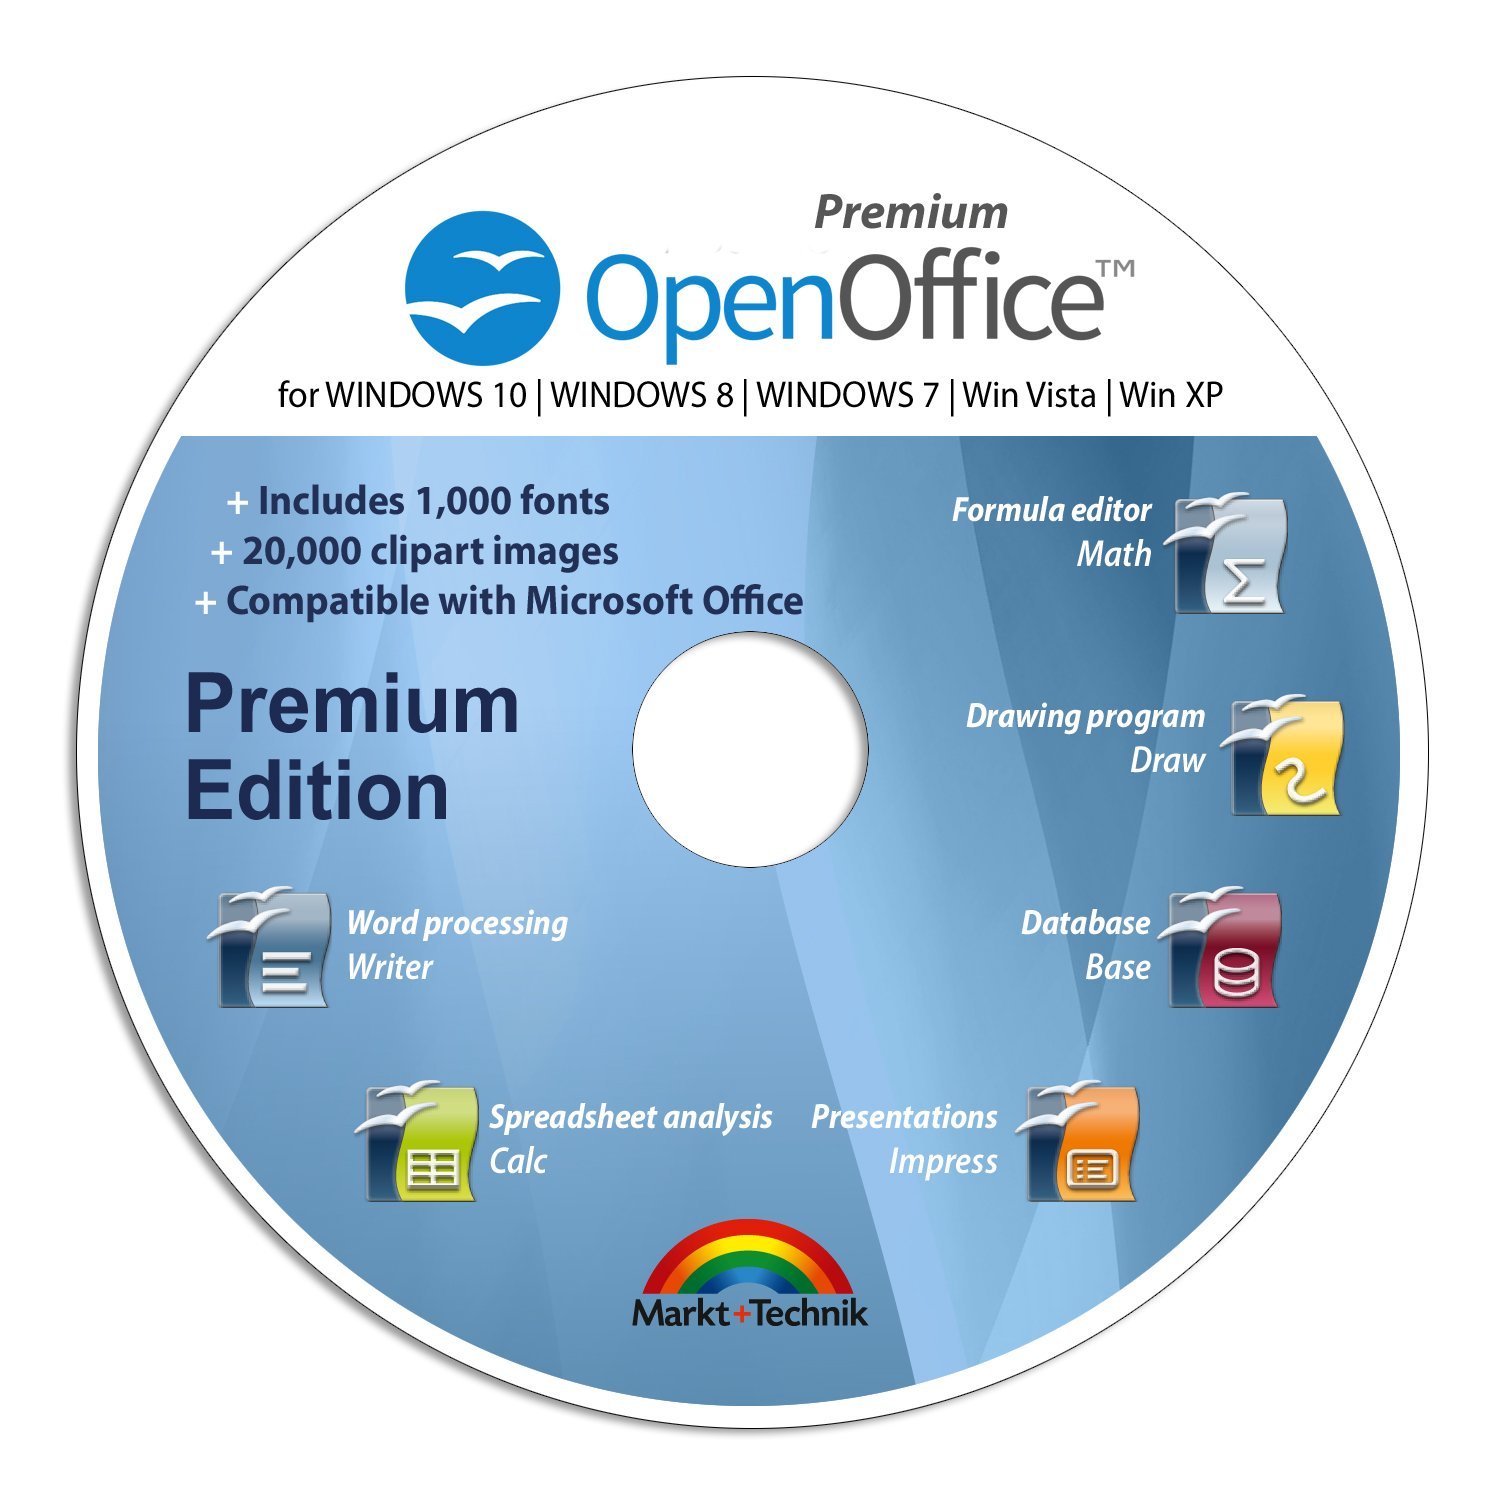 Running windows vista and microsoft office including powerpoint - Amazon Com Office Suite Special Edition For Windows 10 8 7 Vista Xp Pc Software And 1 000 New Fonts Alternative To Microsoft Office Compatible With